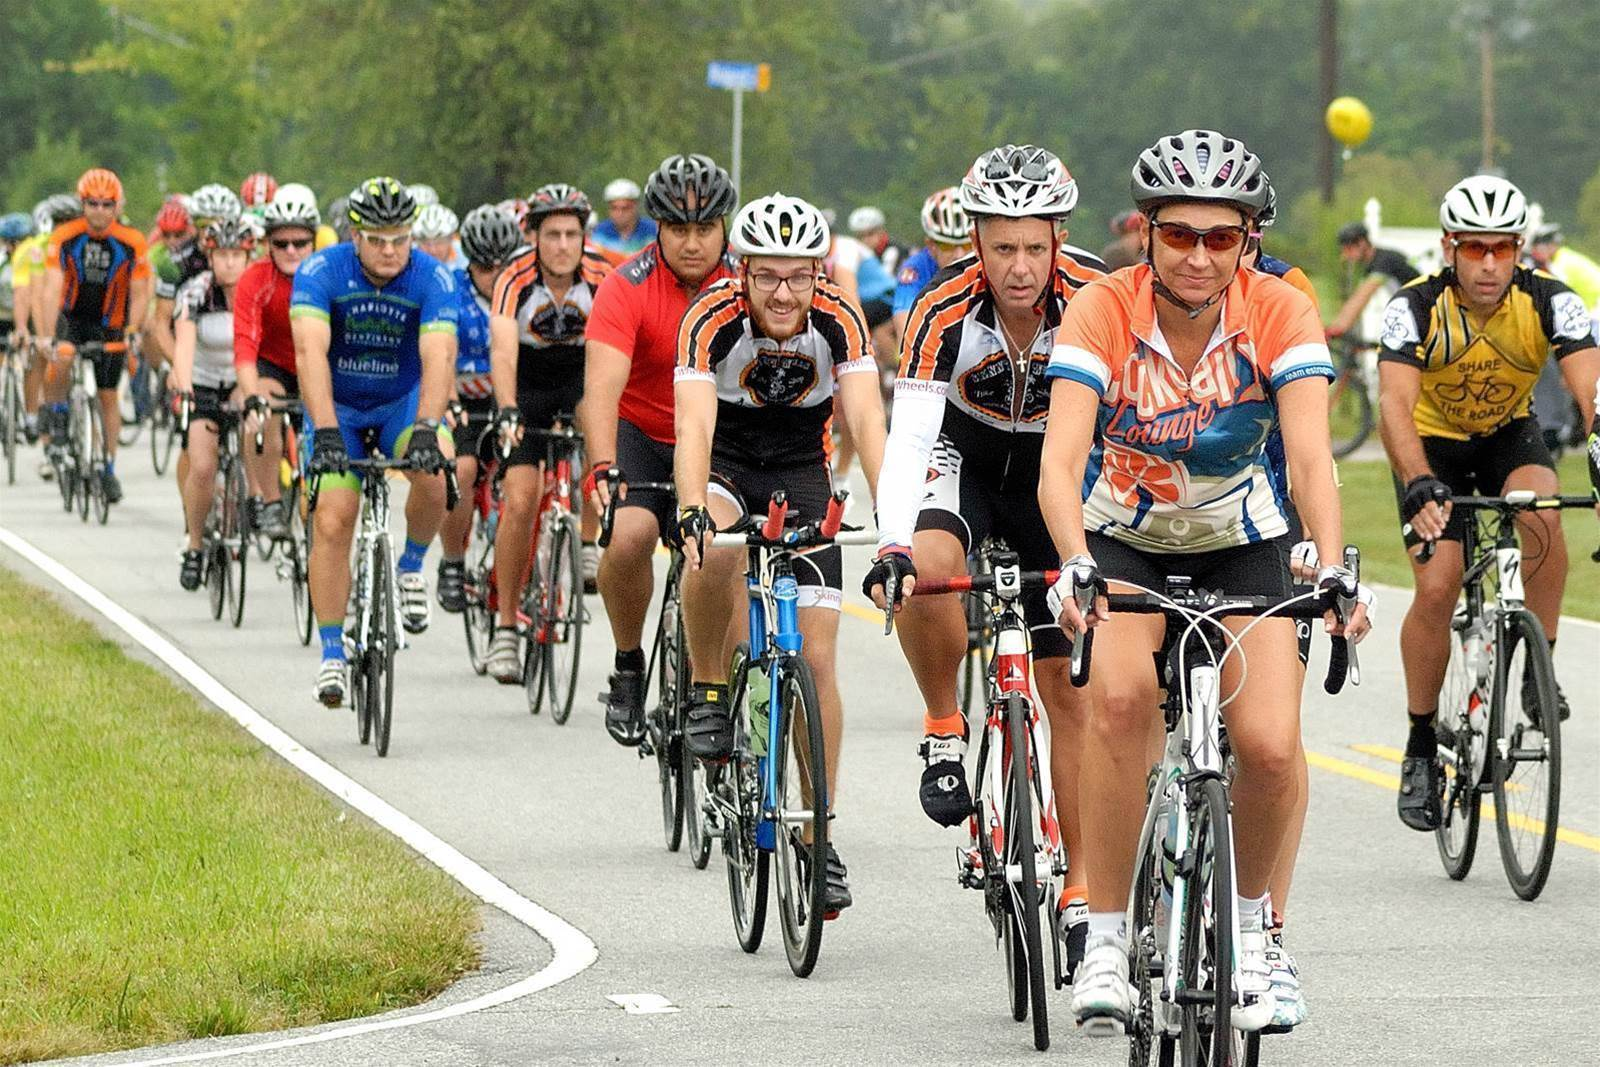 How to make your first long charity ride awesome